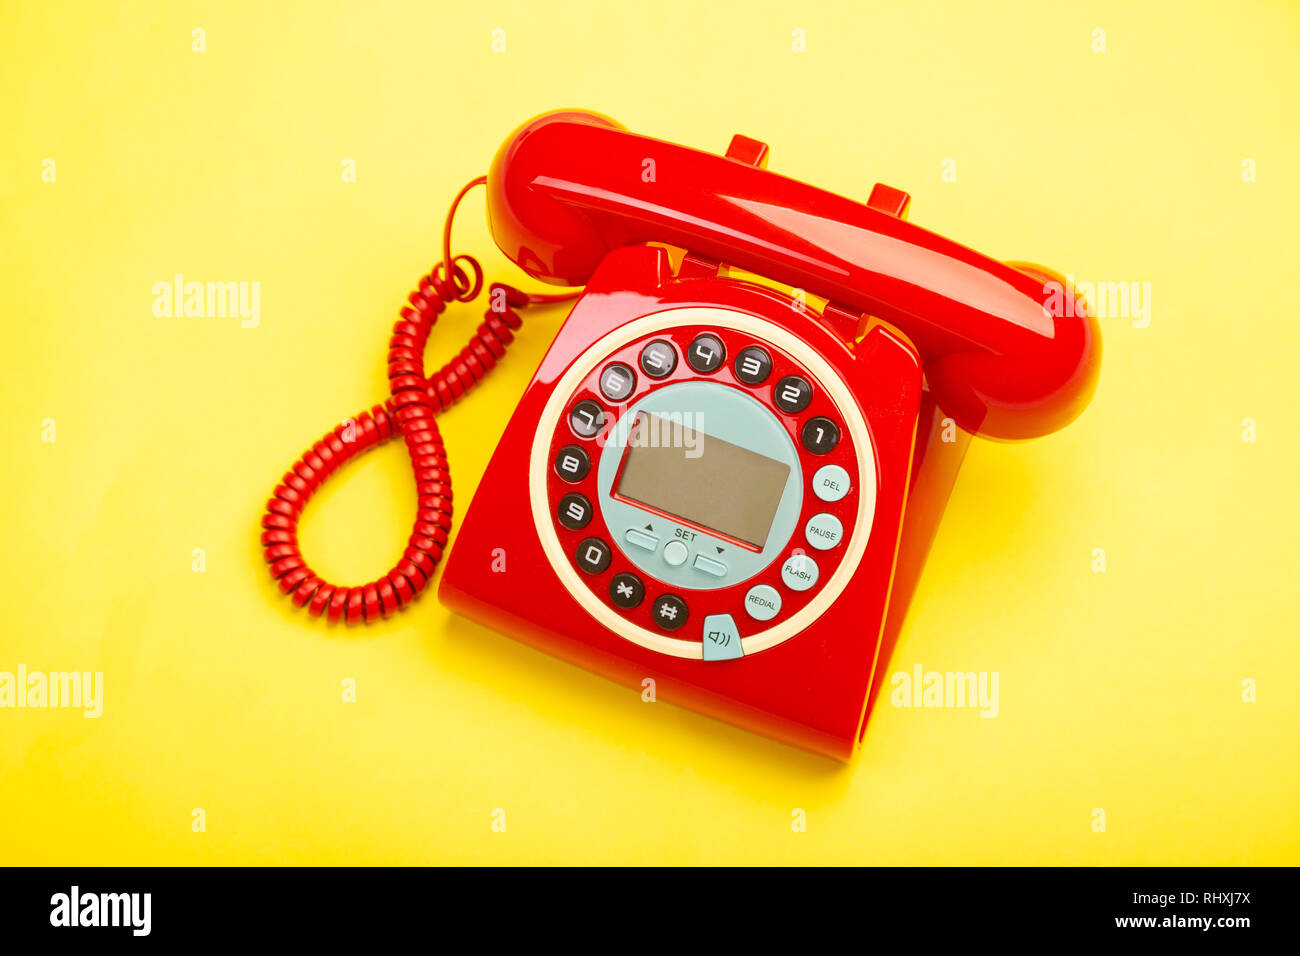 A red retro telephone from above against a yellow background. Stock Photo